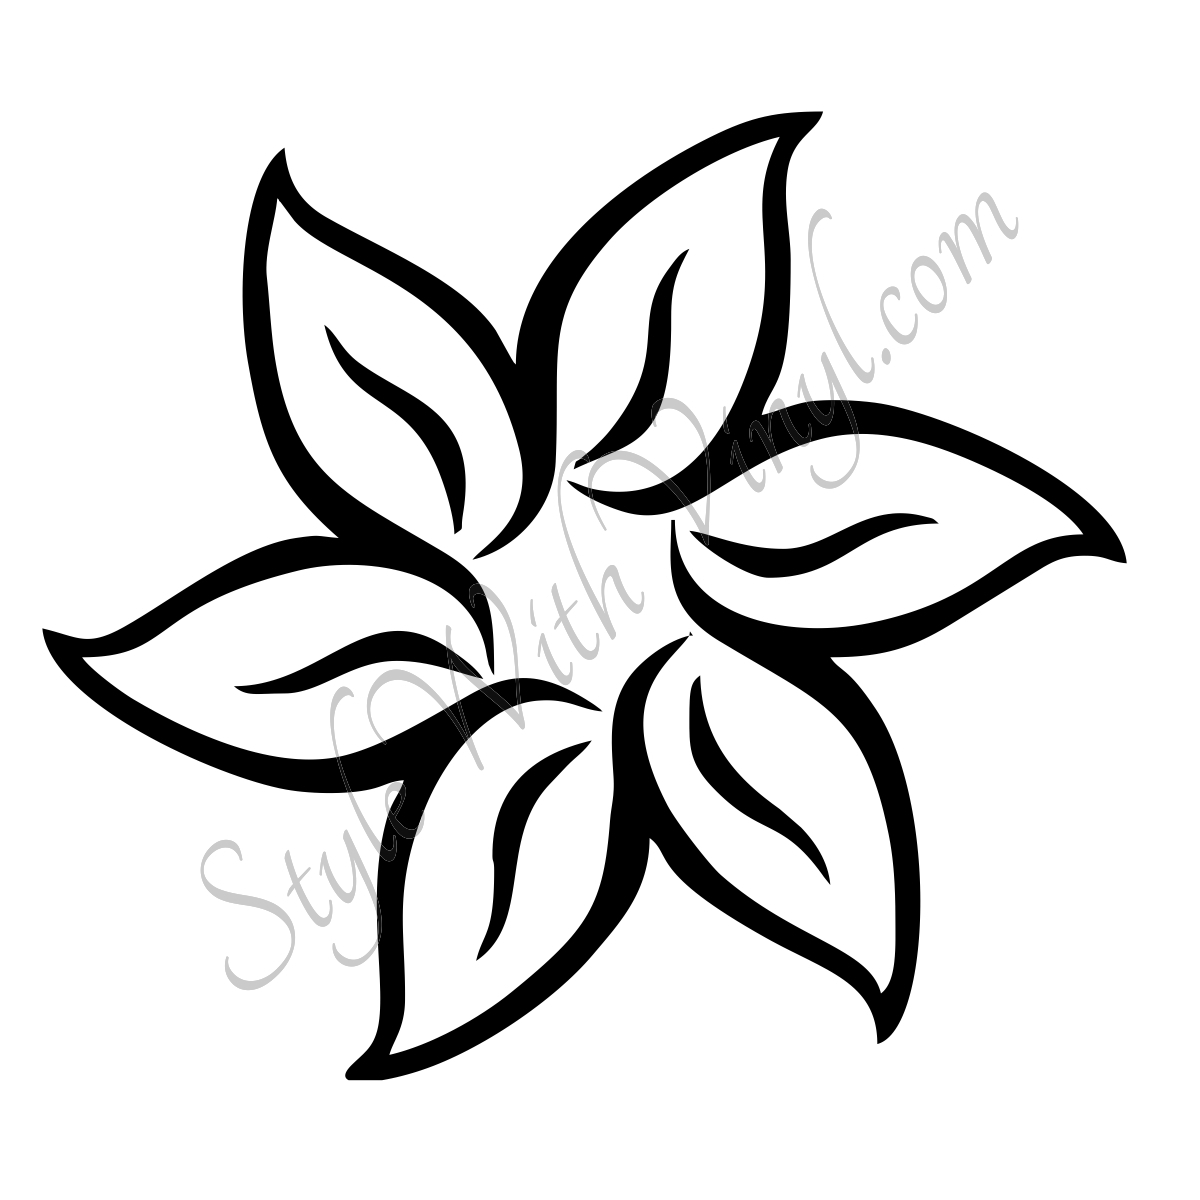 Black and white flowers drawing at getdrawings free for 1200x1200 drawings of simple flowers mightylinksfo